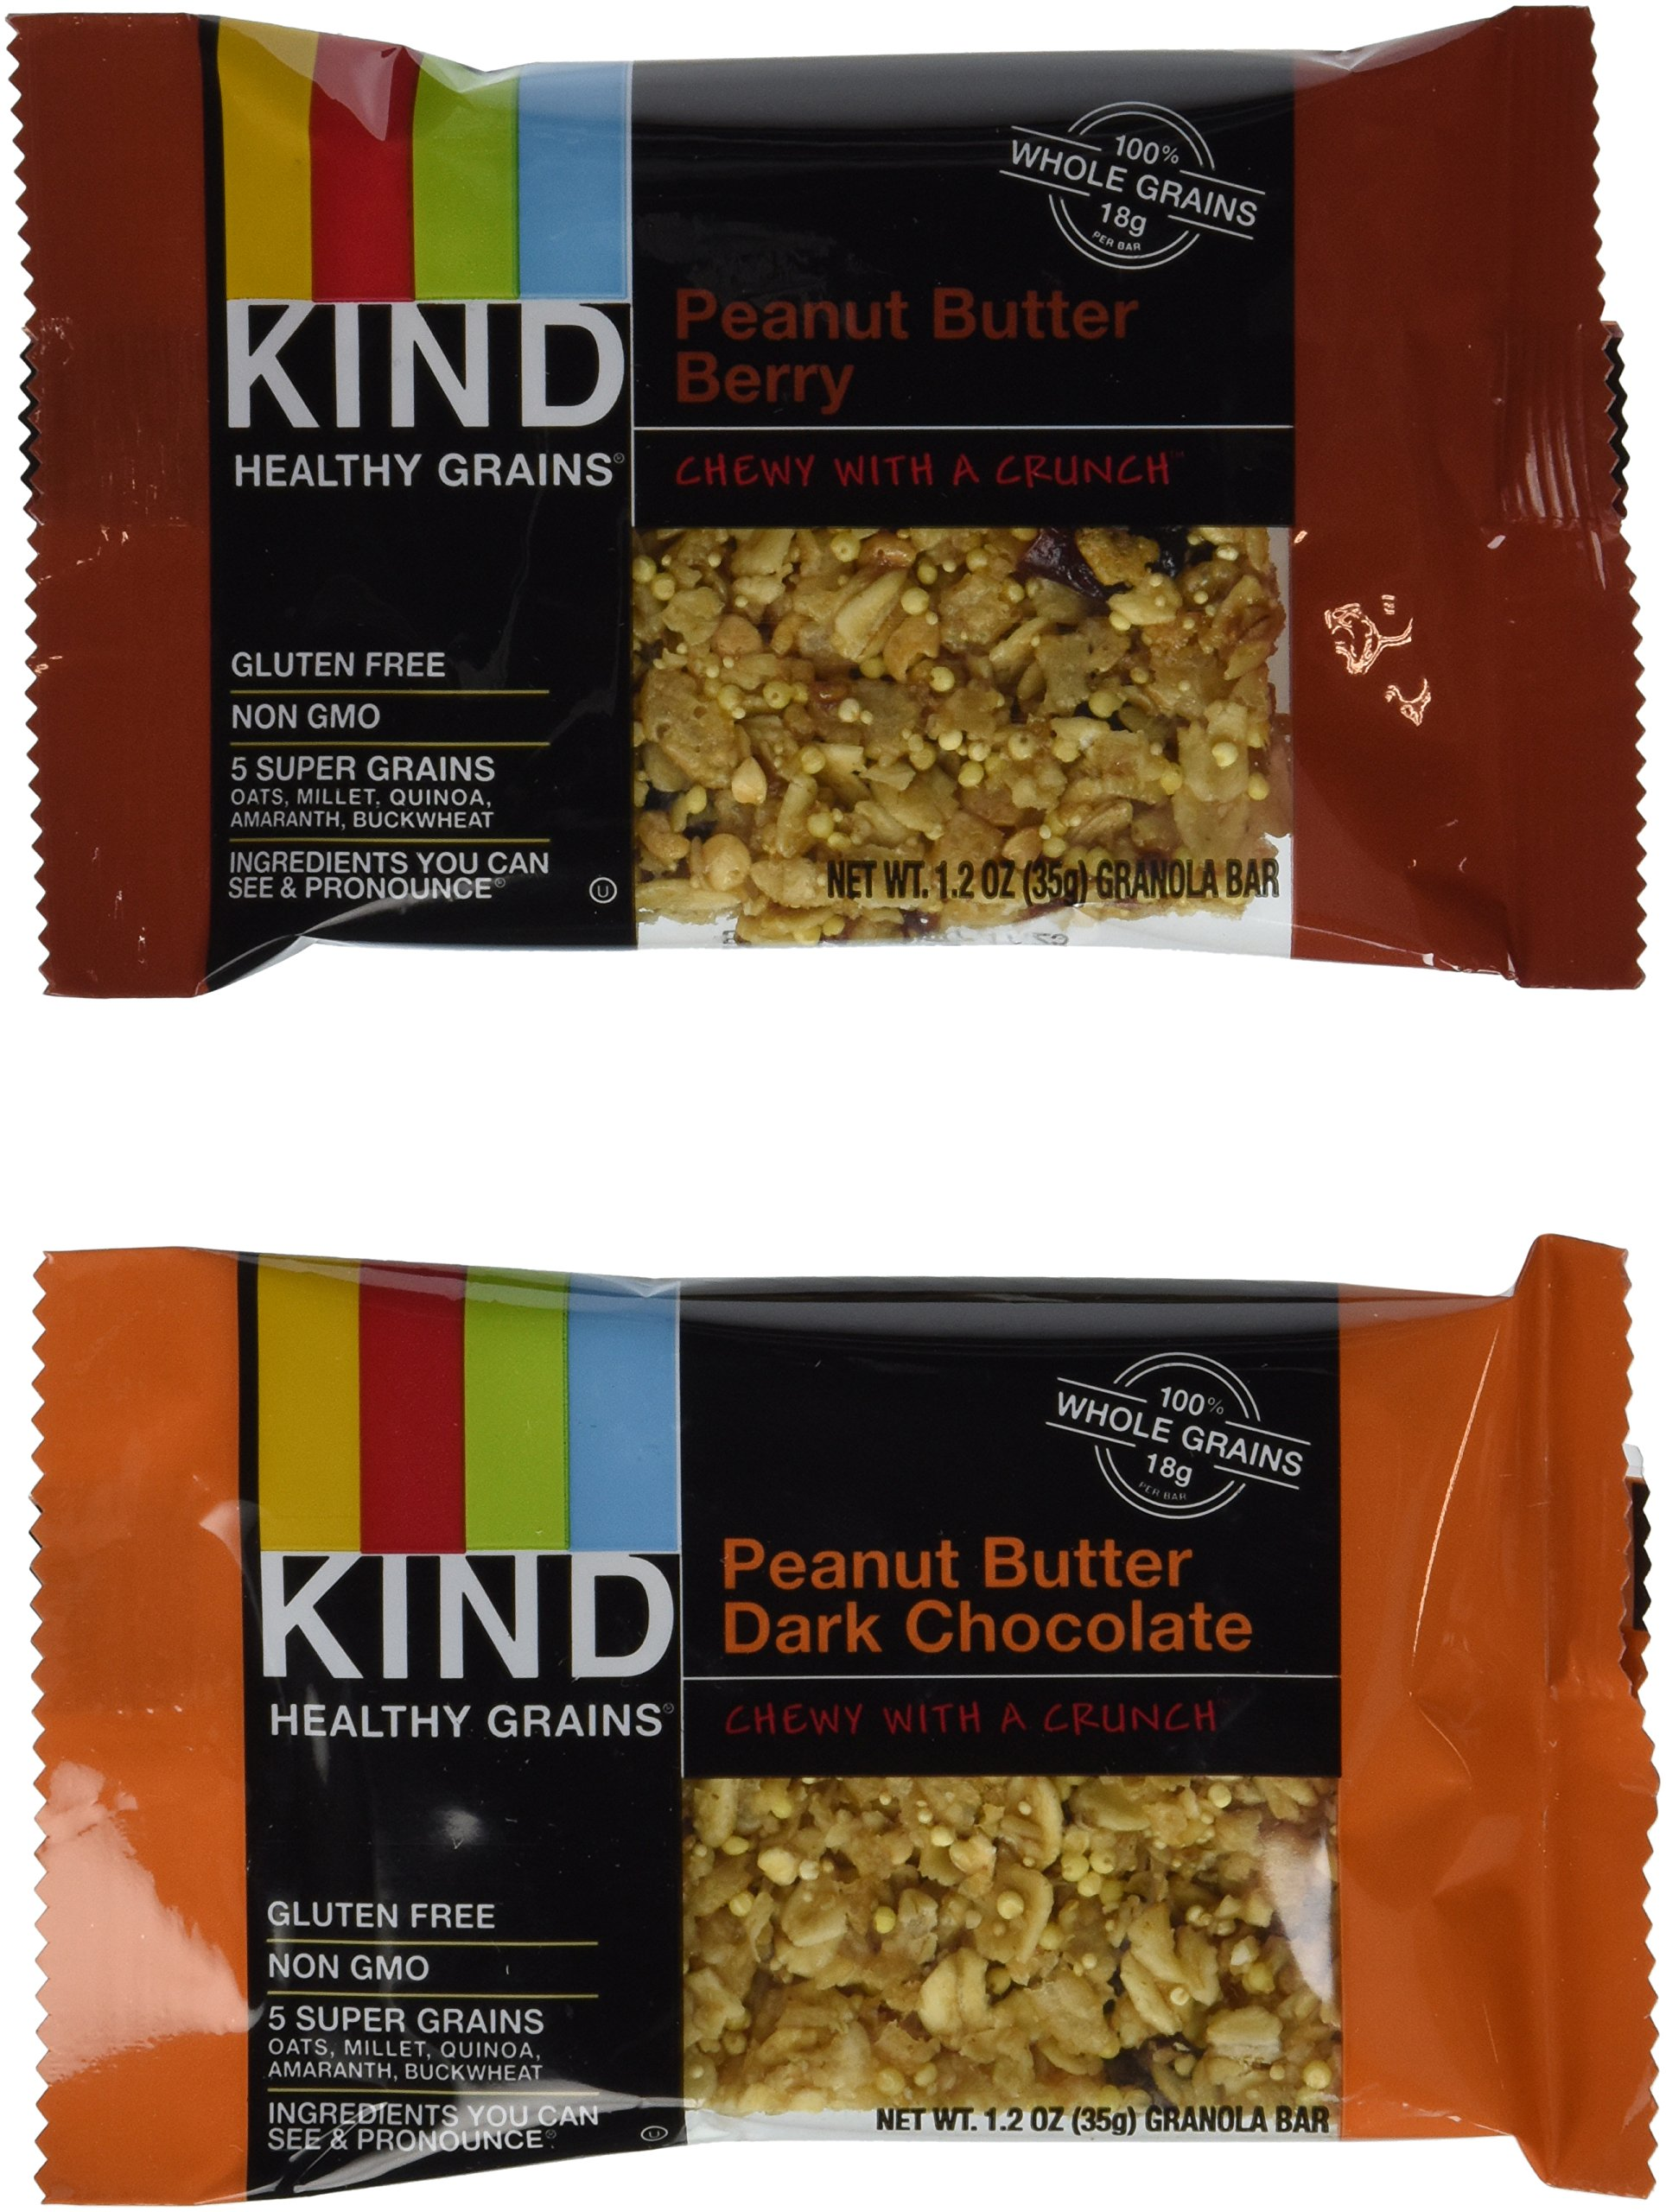 KIND Healthy Grains Granola Bars, Peanut Butter Lovers Variety Pack, Gluten Free, 1.2oz Bars, 15 Count